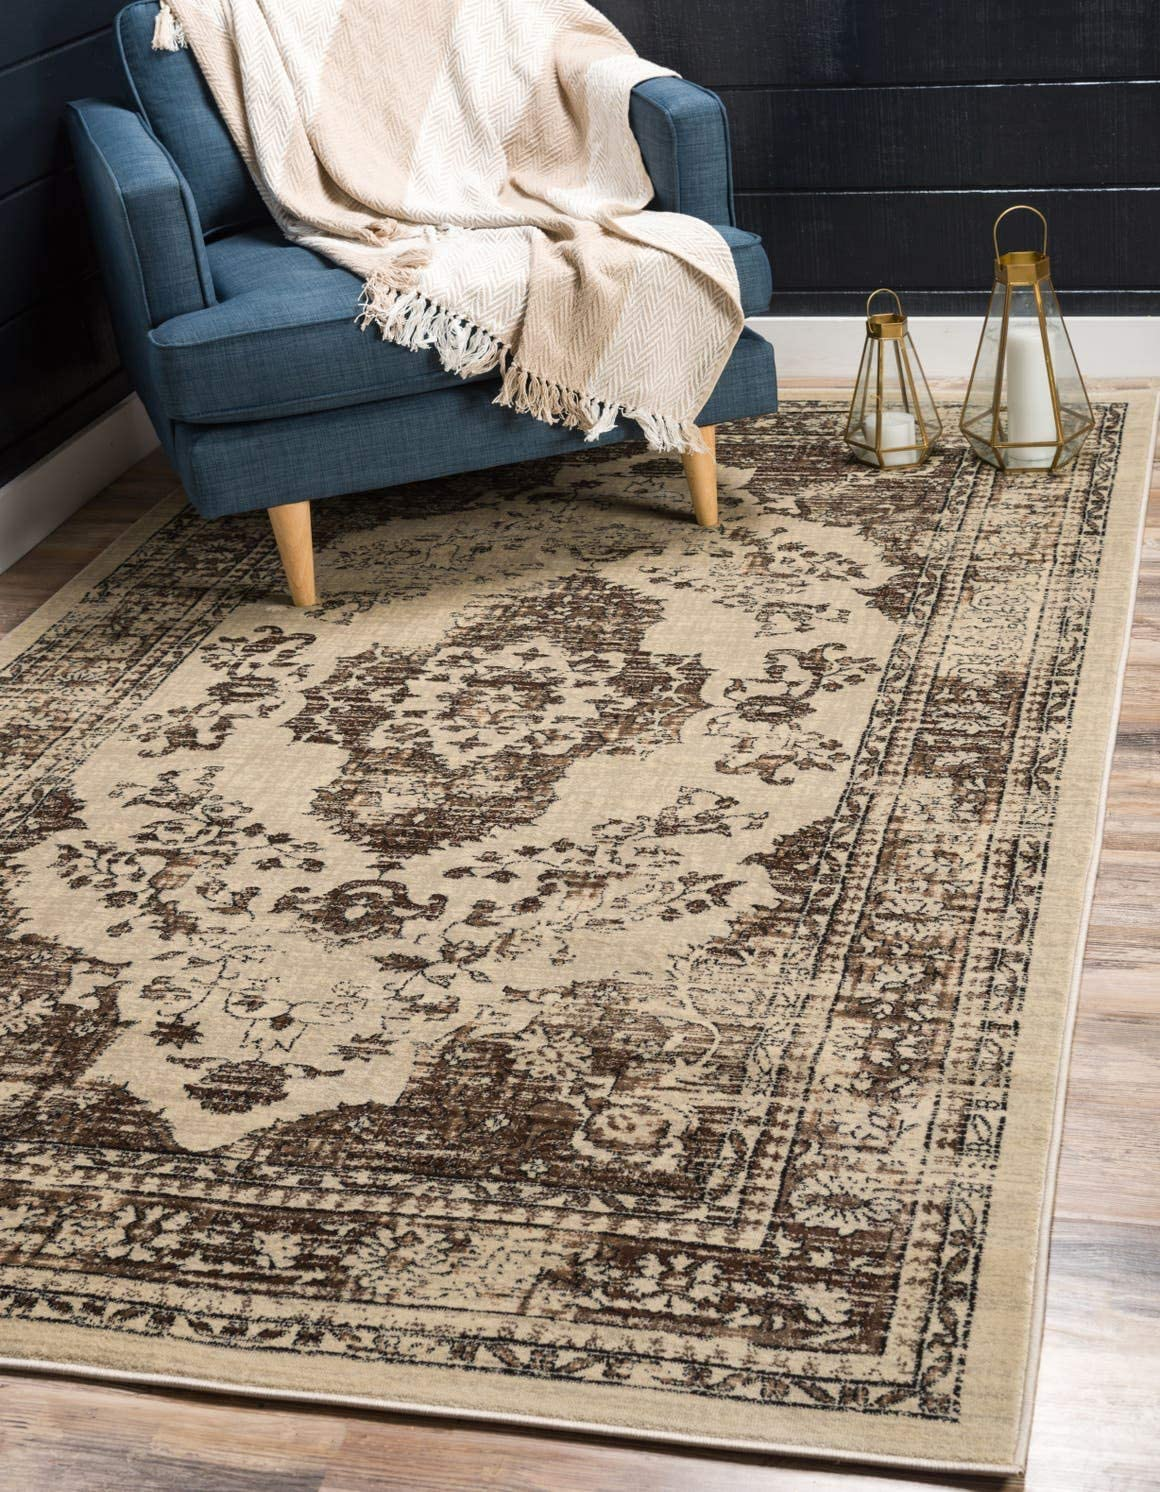 Unique Loom Oslo Collection Distressed Vintage Traditional Beige Area Rug 8 x 11